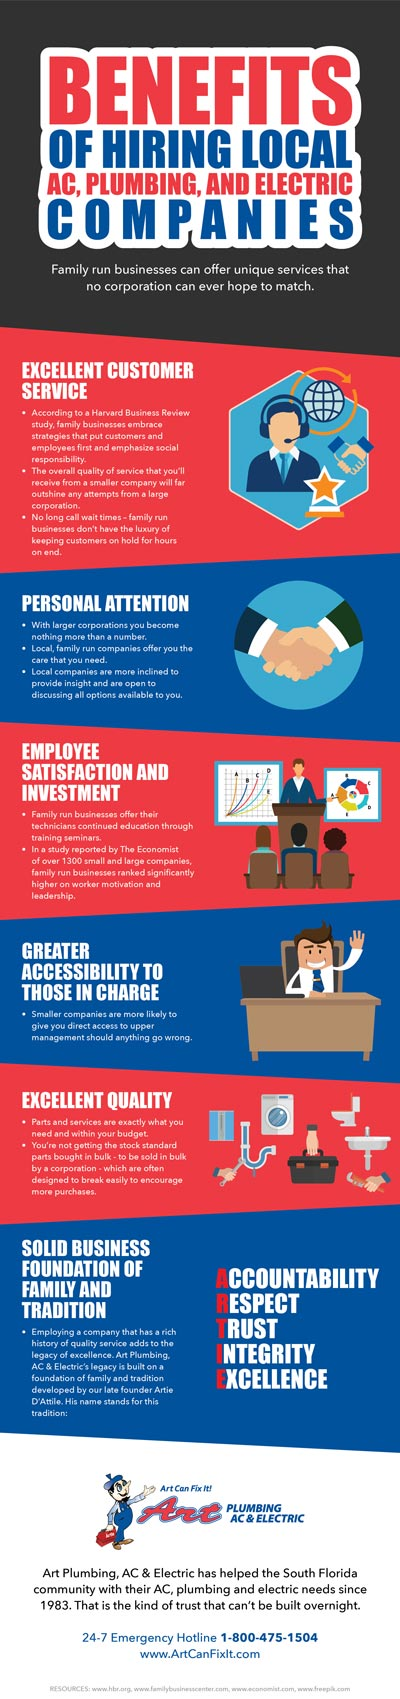 Benefits of Hiring Local AC Companies Infographic